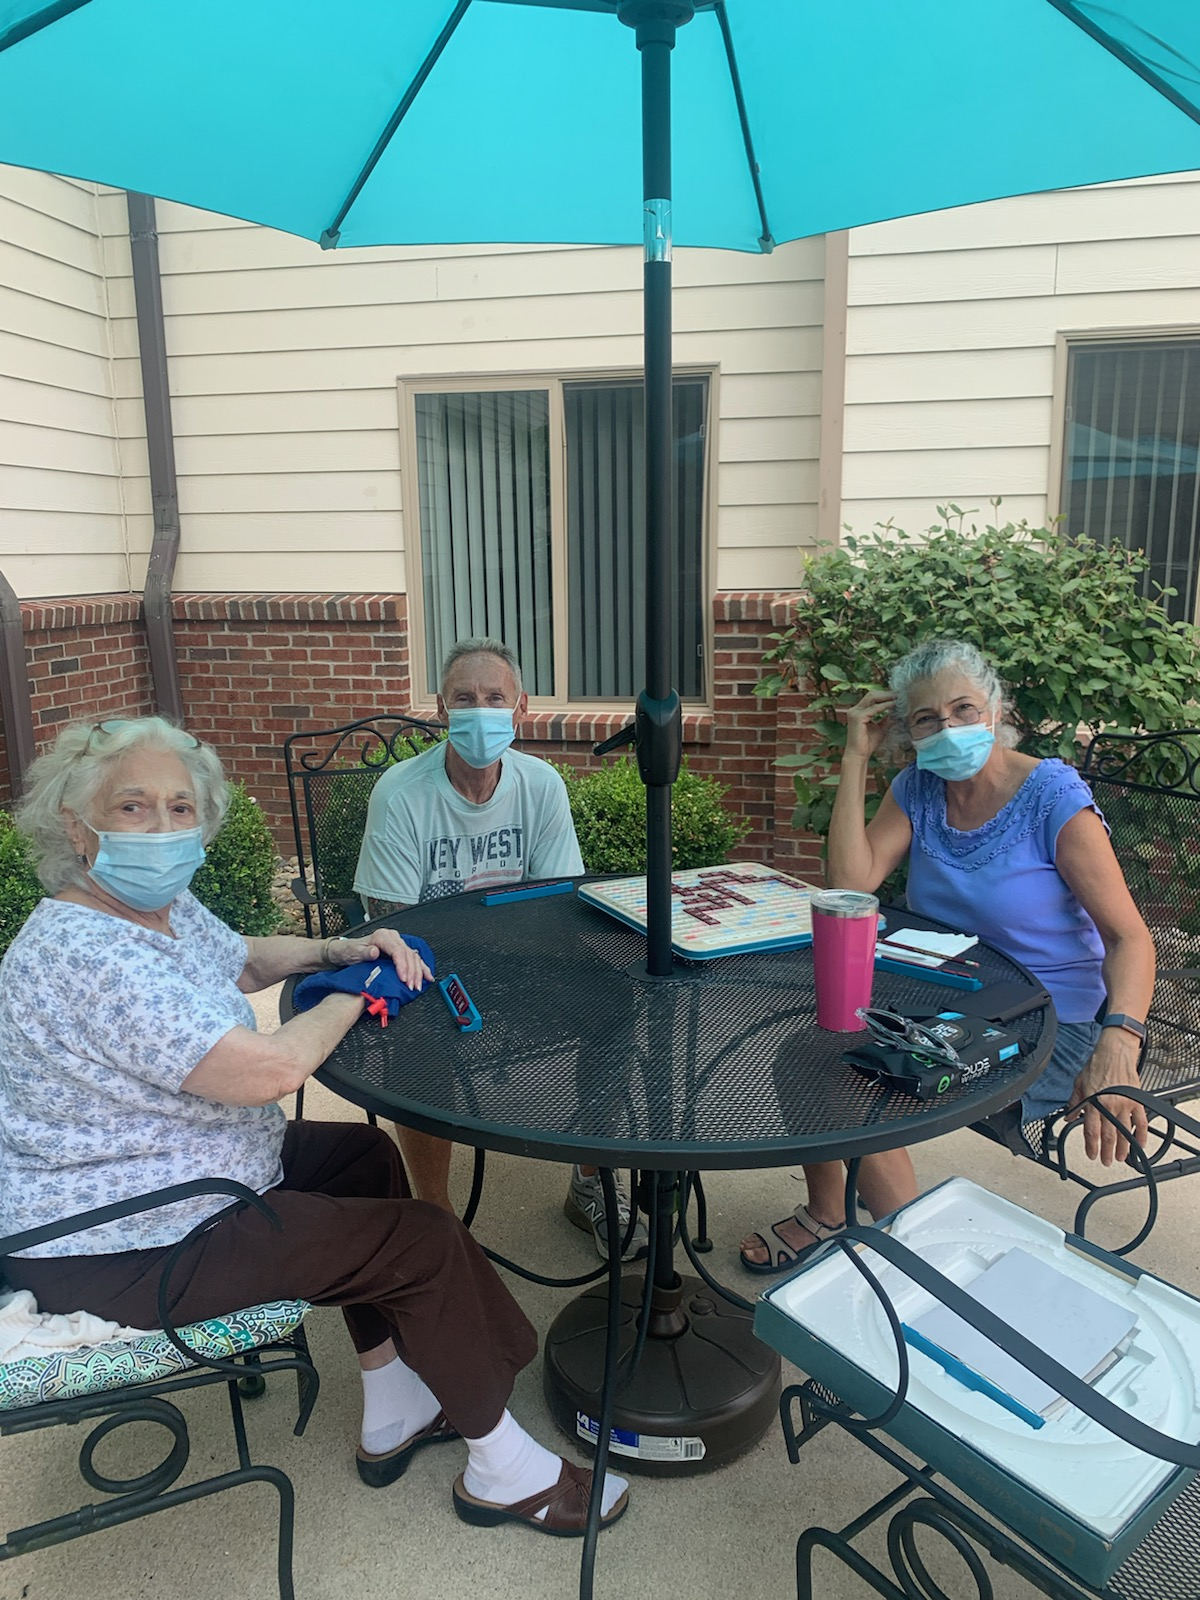 Emma and her family are enjoying the great weather by playing a game of Scrabble on the patio.